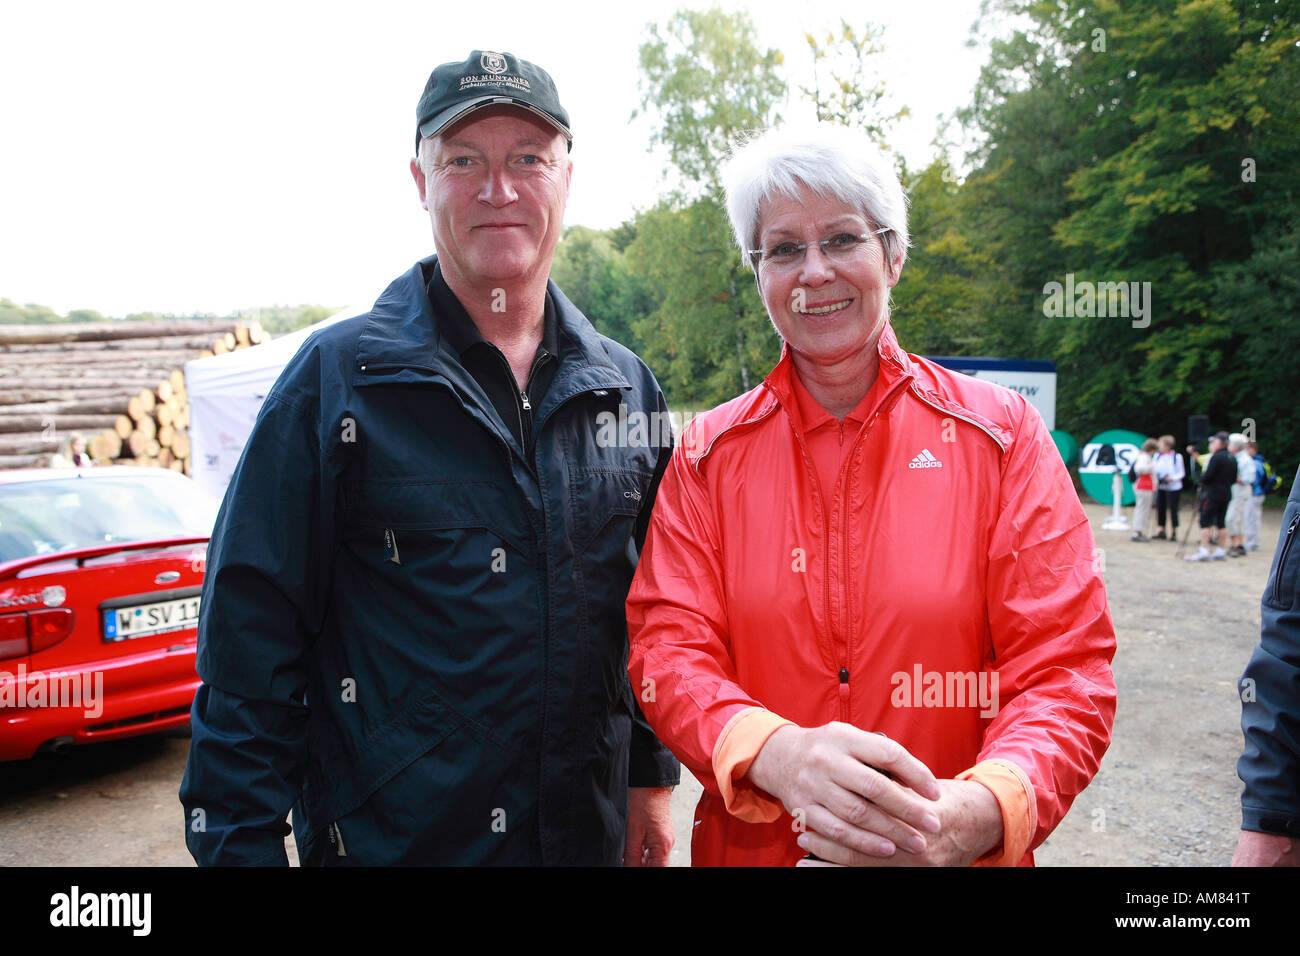 District Administrator Rolf Menzel, double olympic champion Heide Ecker-Rosendahl - Stock Image